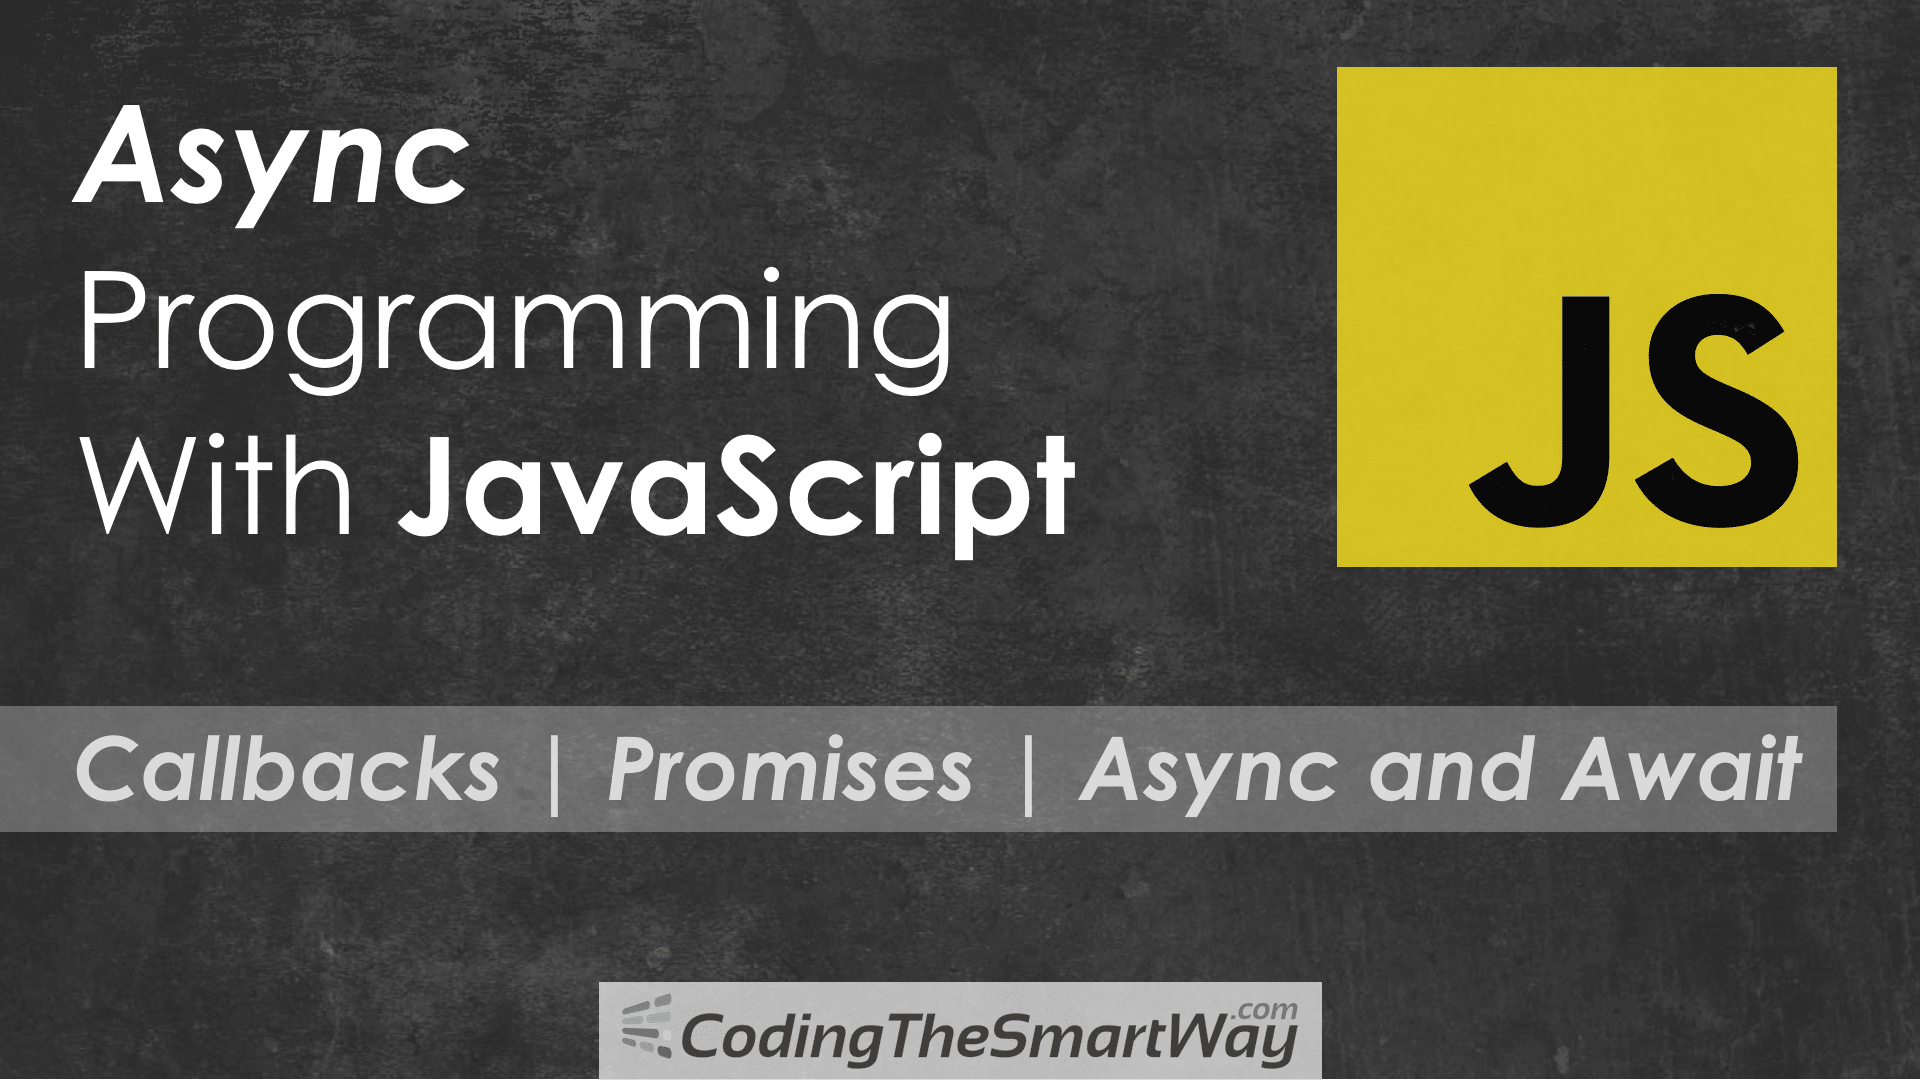 Async Programming With JavaScript - Callbacks, Promises and